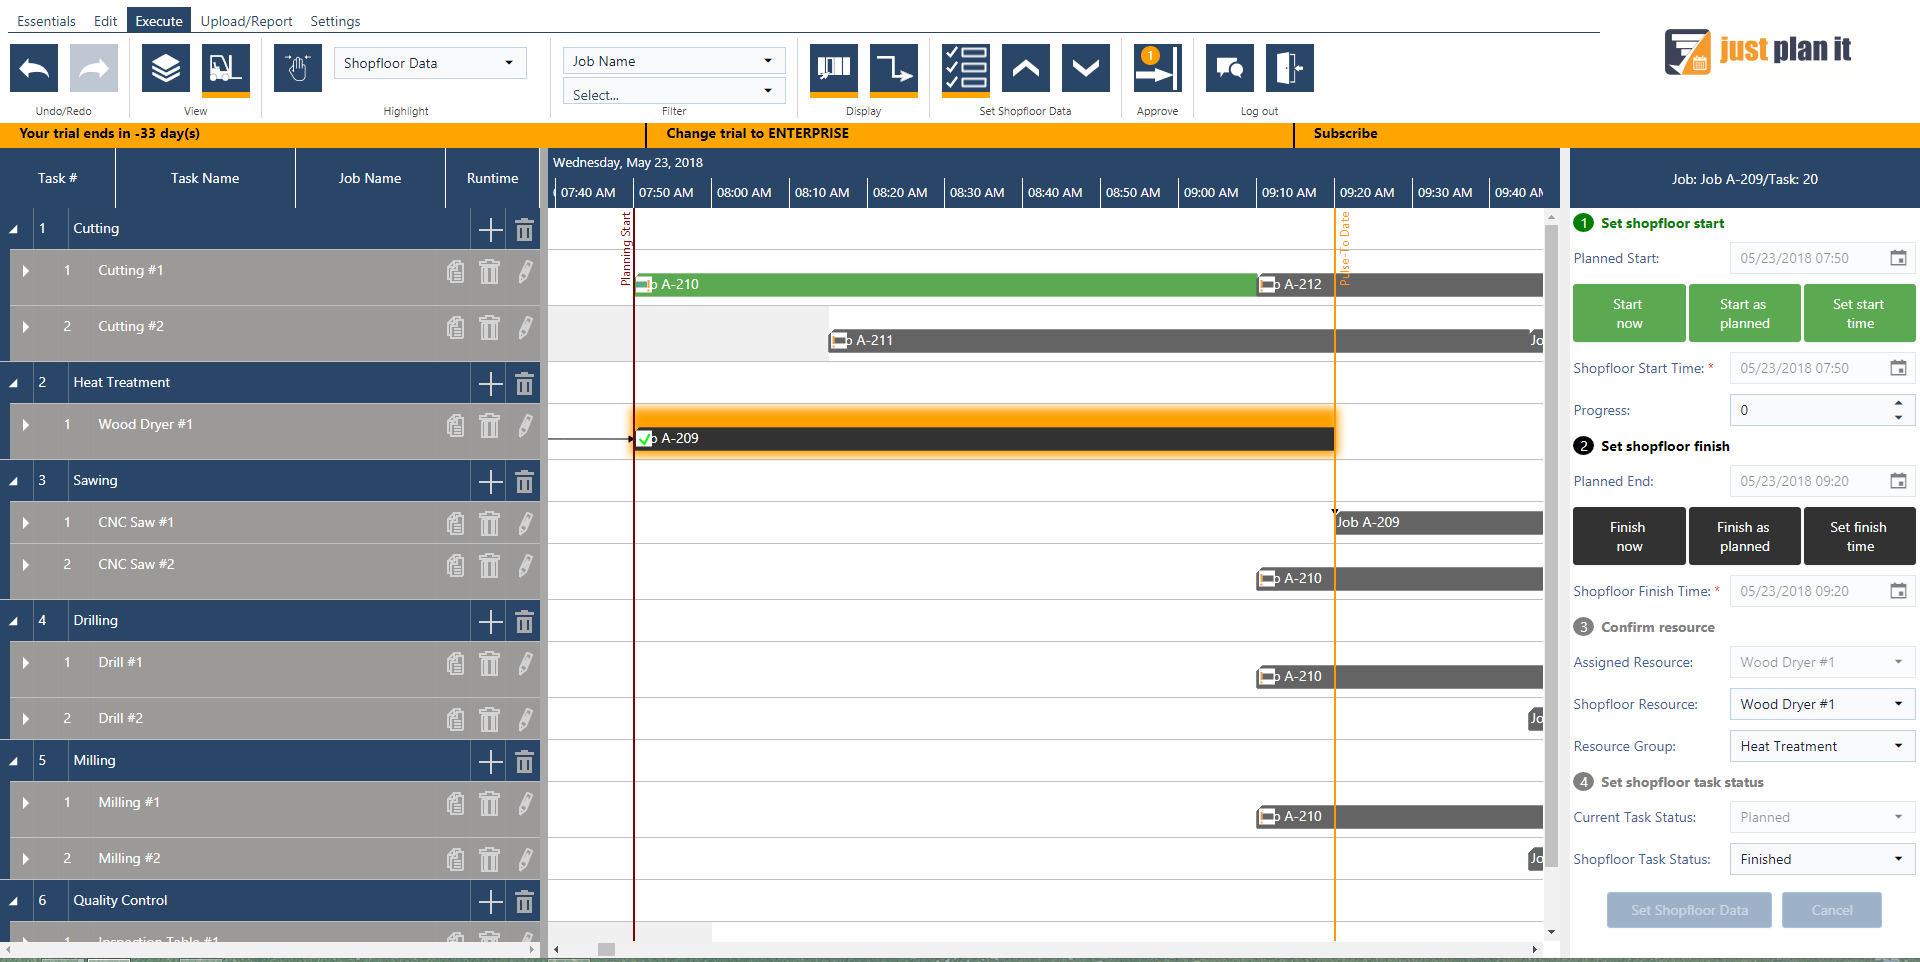 Execute Mode: Job shop scheduling meets manufacturing execution